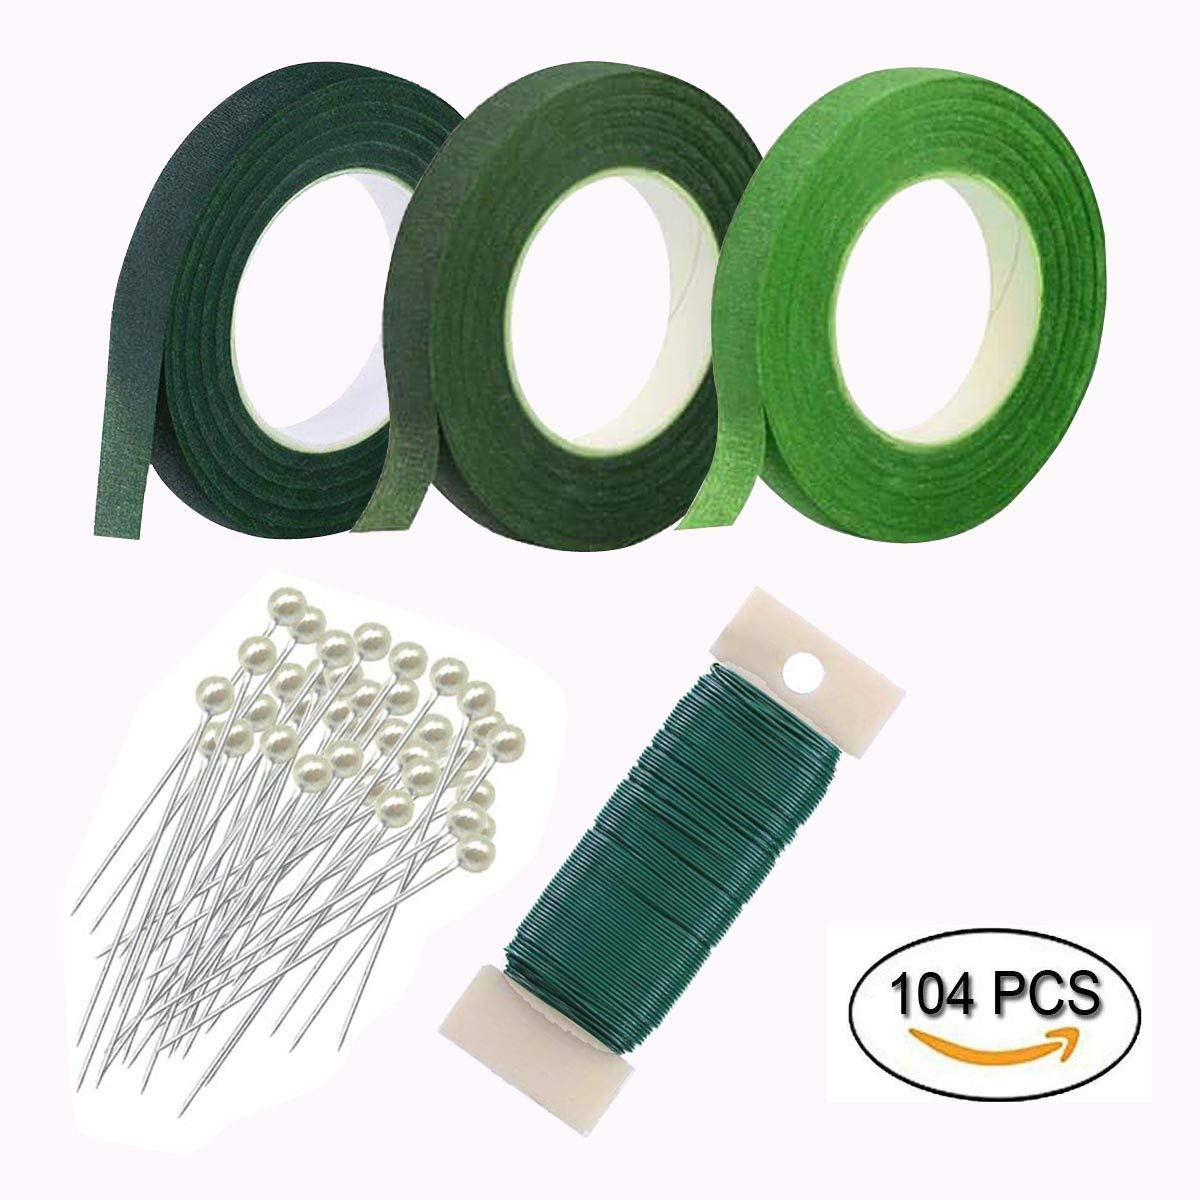 Woohome Floral Arrangement Tool Kit 3 Roll of 1/2 Inch Floral Tapes, 1 Roll of 22 Gauge Floral Paddle Wire and 100 PCS Ball Head Pins for Wedding Bouquet DIY